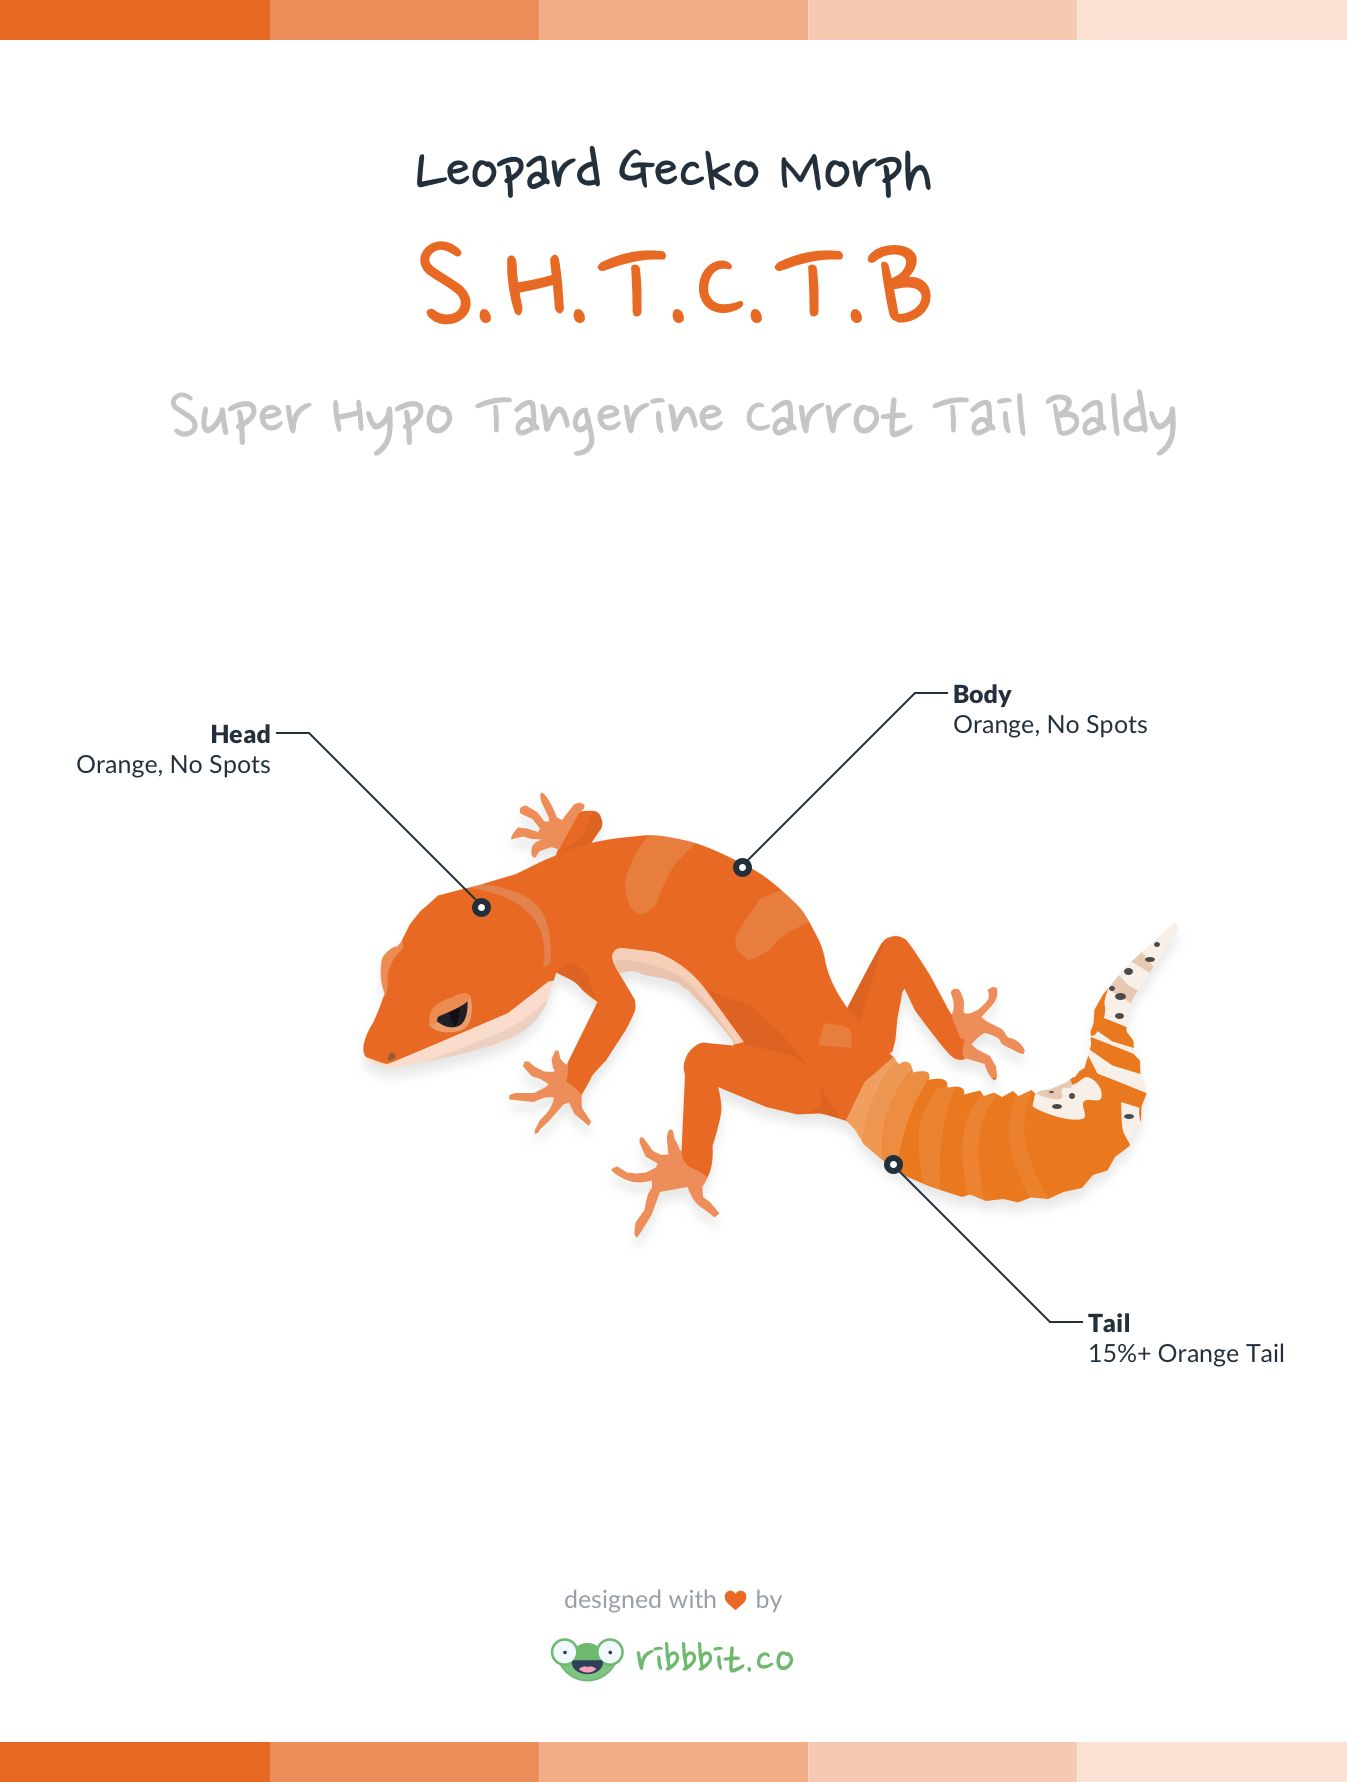 a super hypo tangerine carrot tail baldy leopard gecko has a tangerine or orange coloration throughout - Coloration Eos